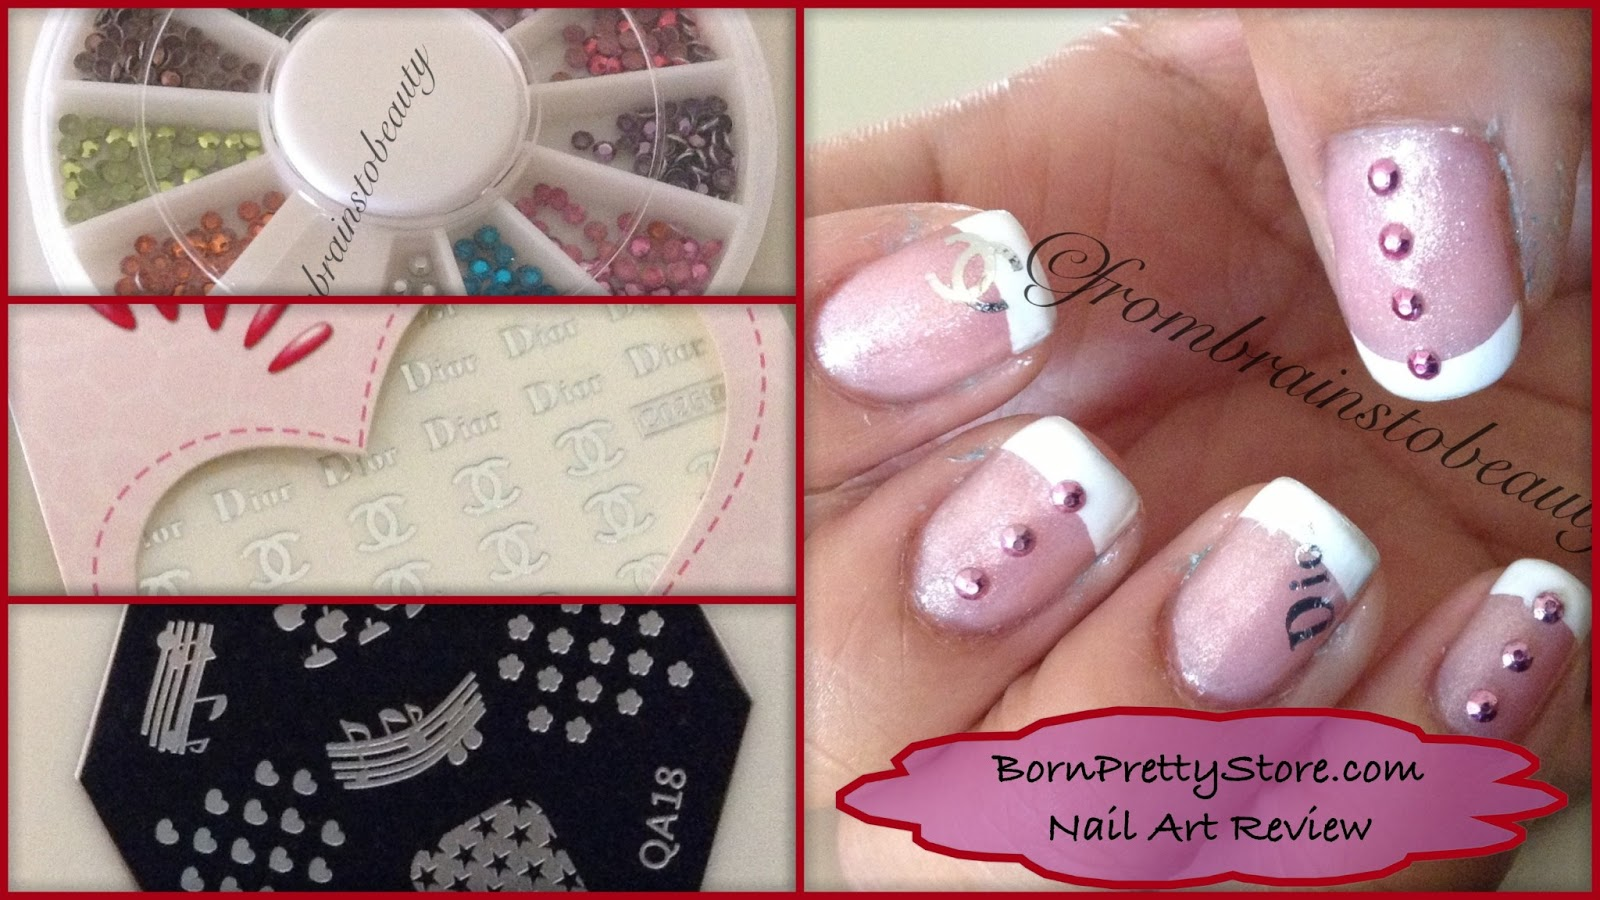 From Brains To Beauty: ♥Born Pretty Store | Nail Art Review♥